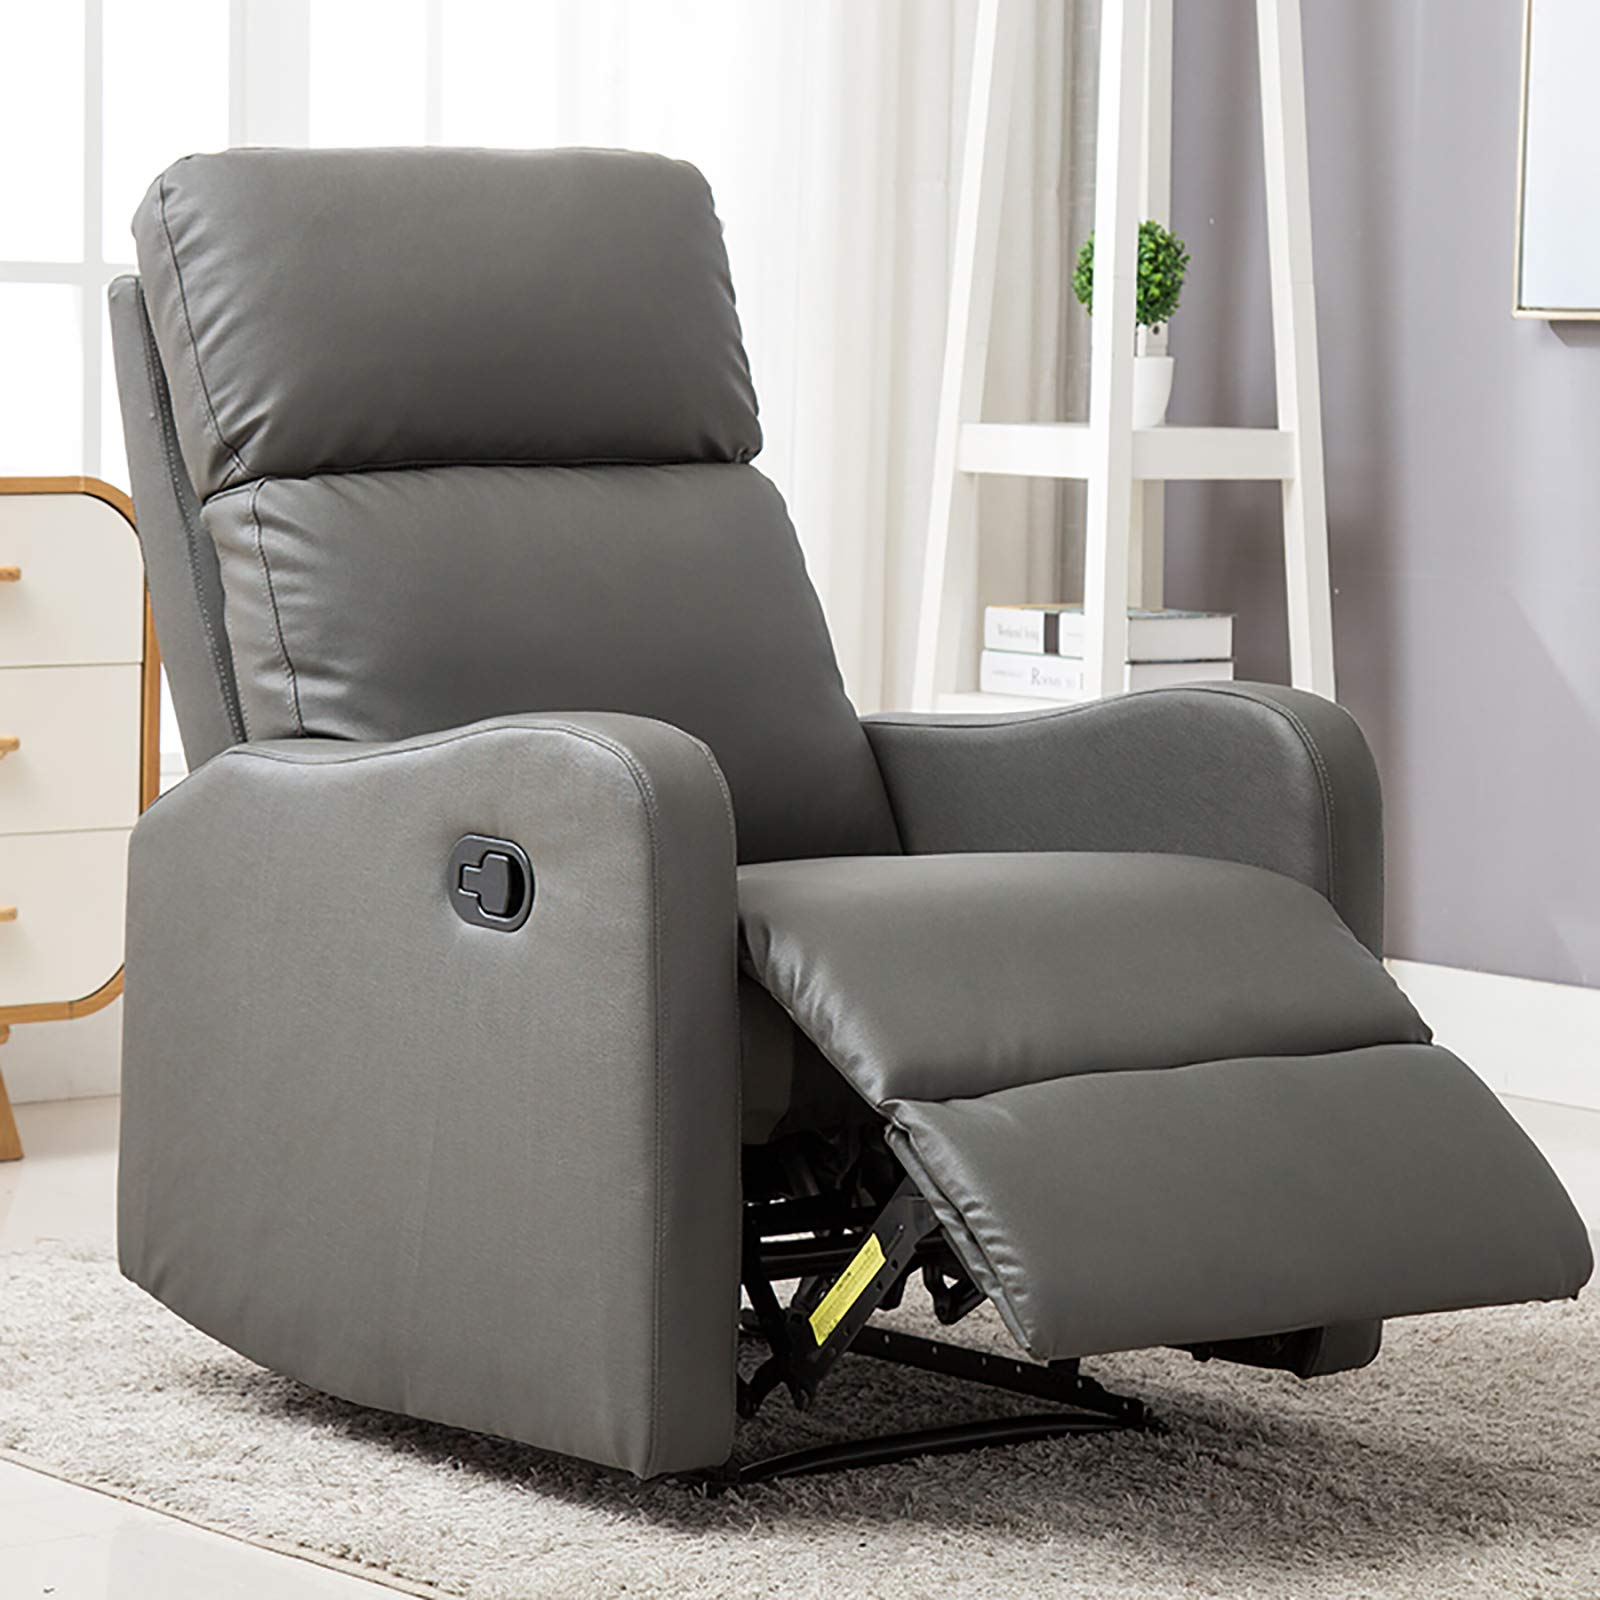 ANJ Chair Contemporary Leather Recliner Chair for Modern Living Room Classic Grey by ANJ